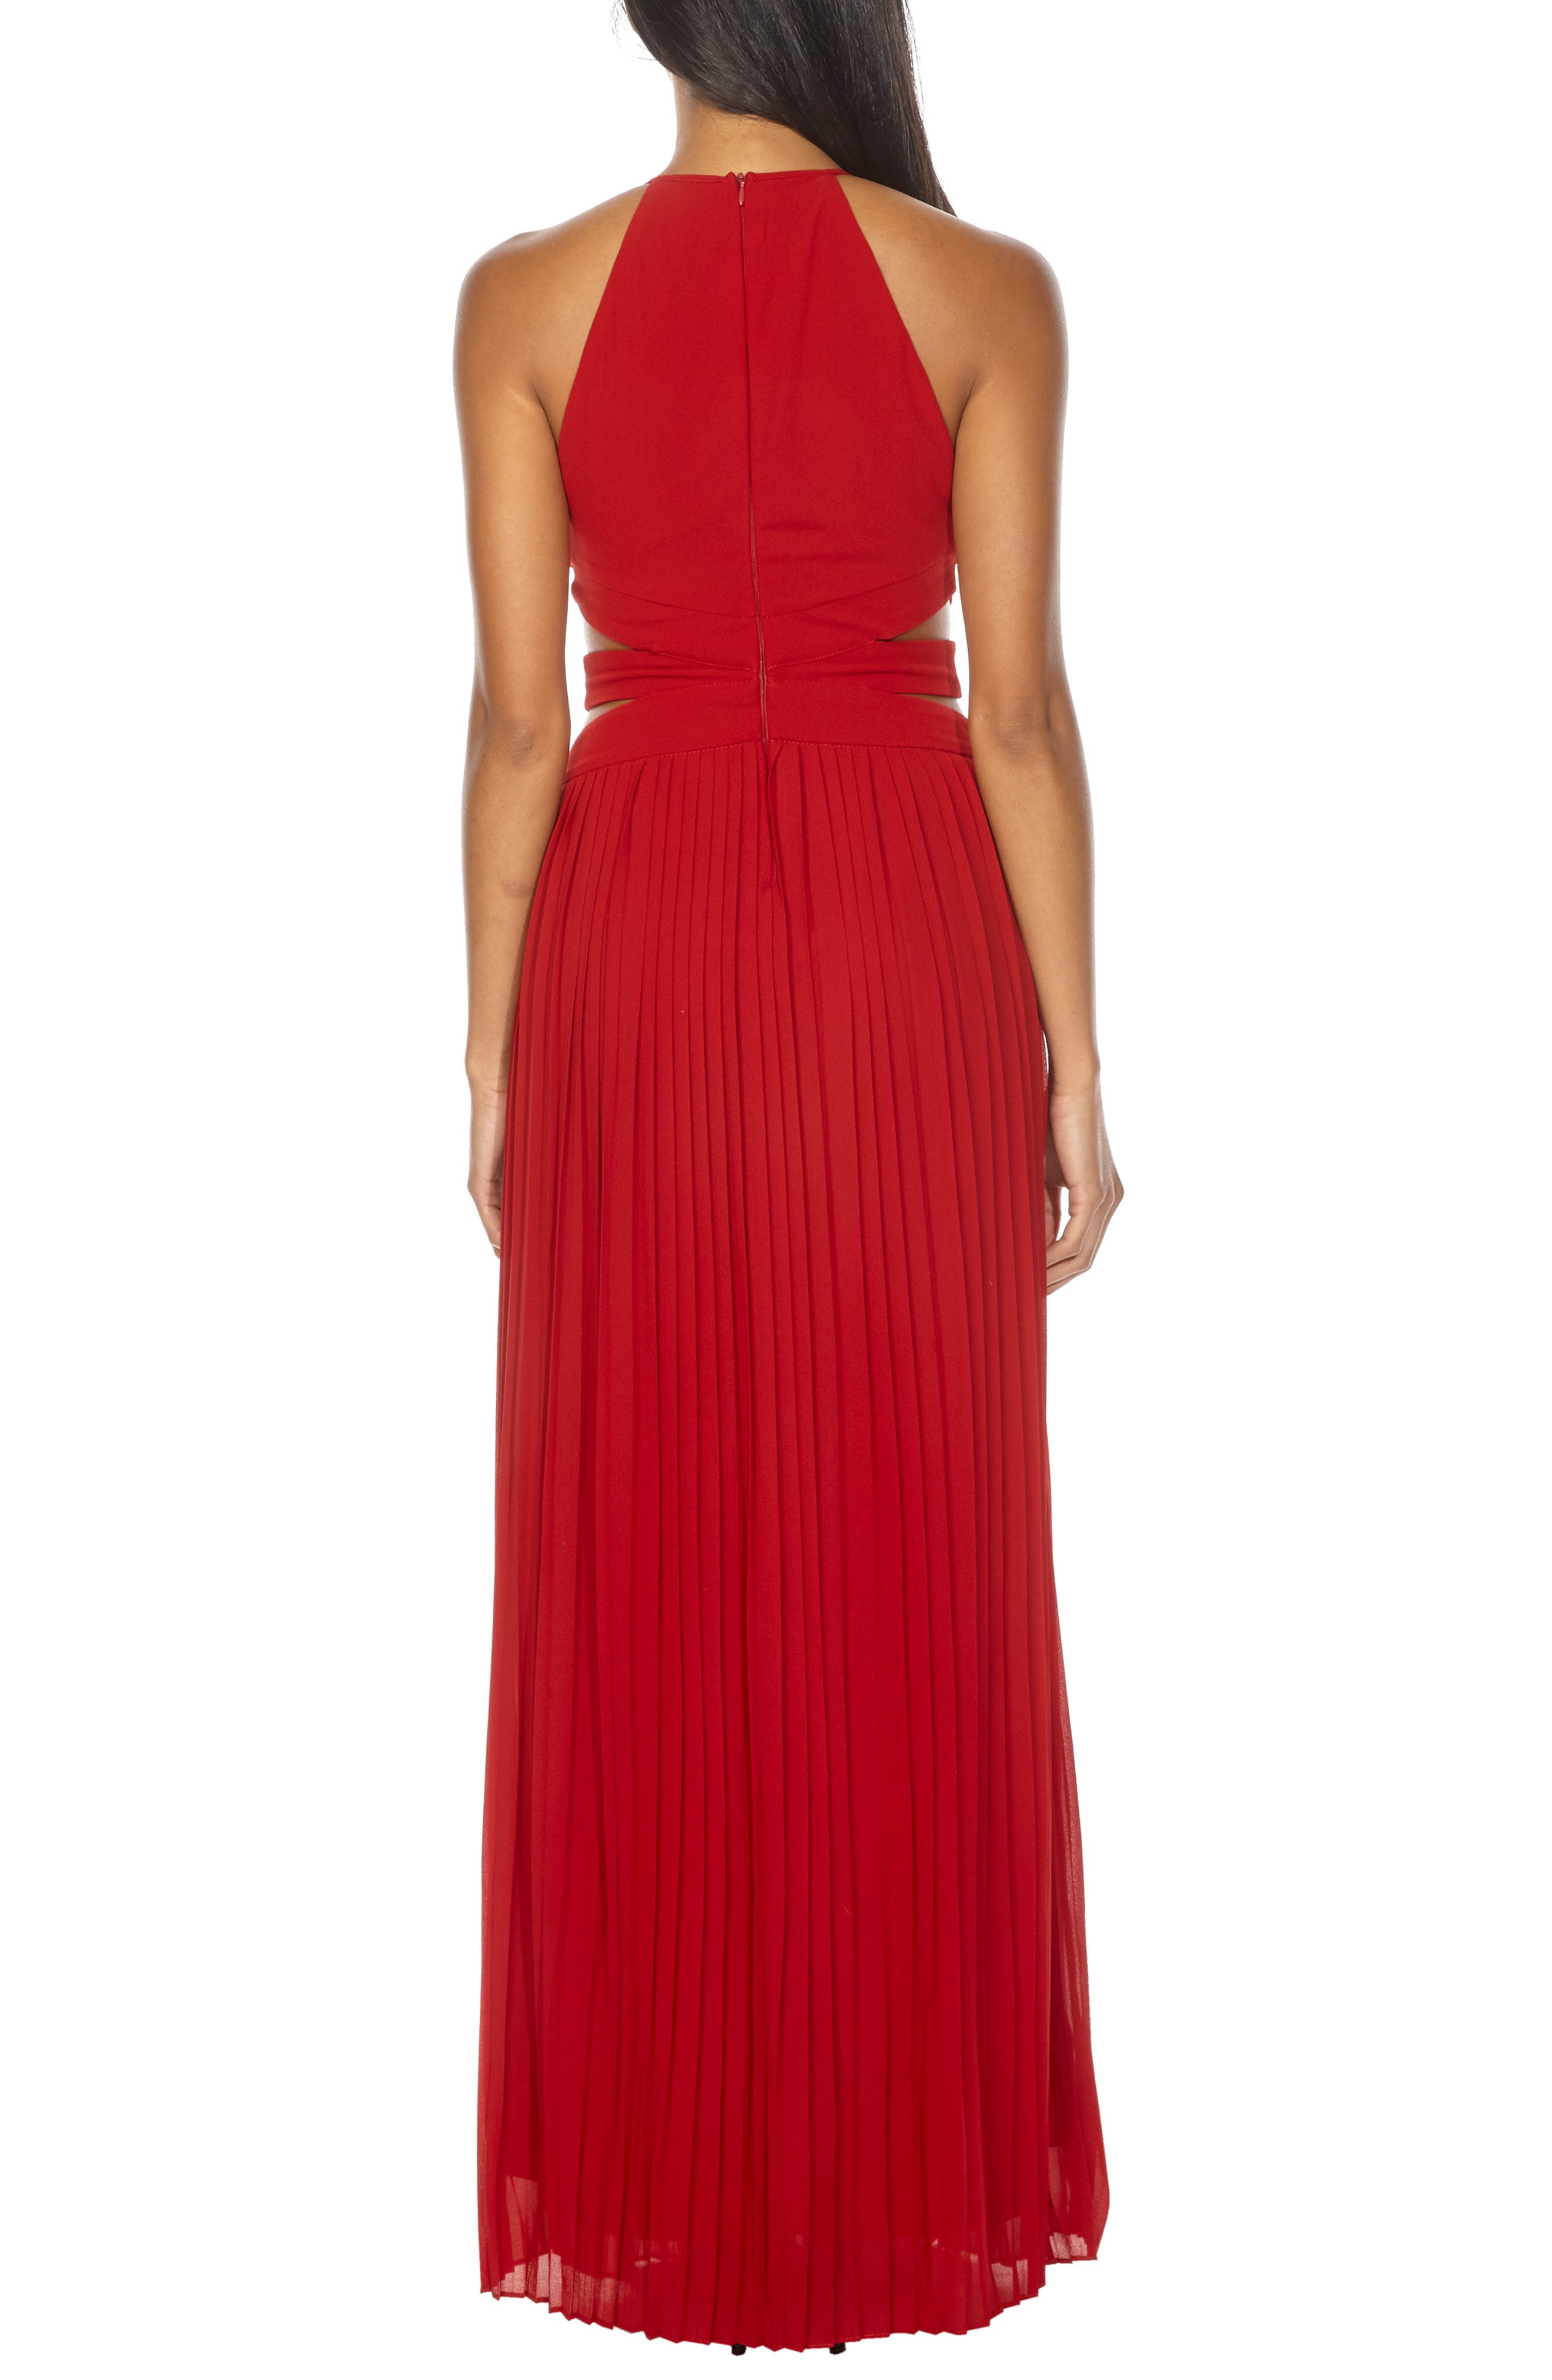 Boston Cutout Maxi Dress,                             Alternate thumbnail 2, color,                             RUBY RED